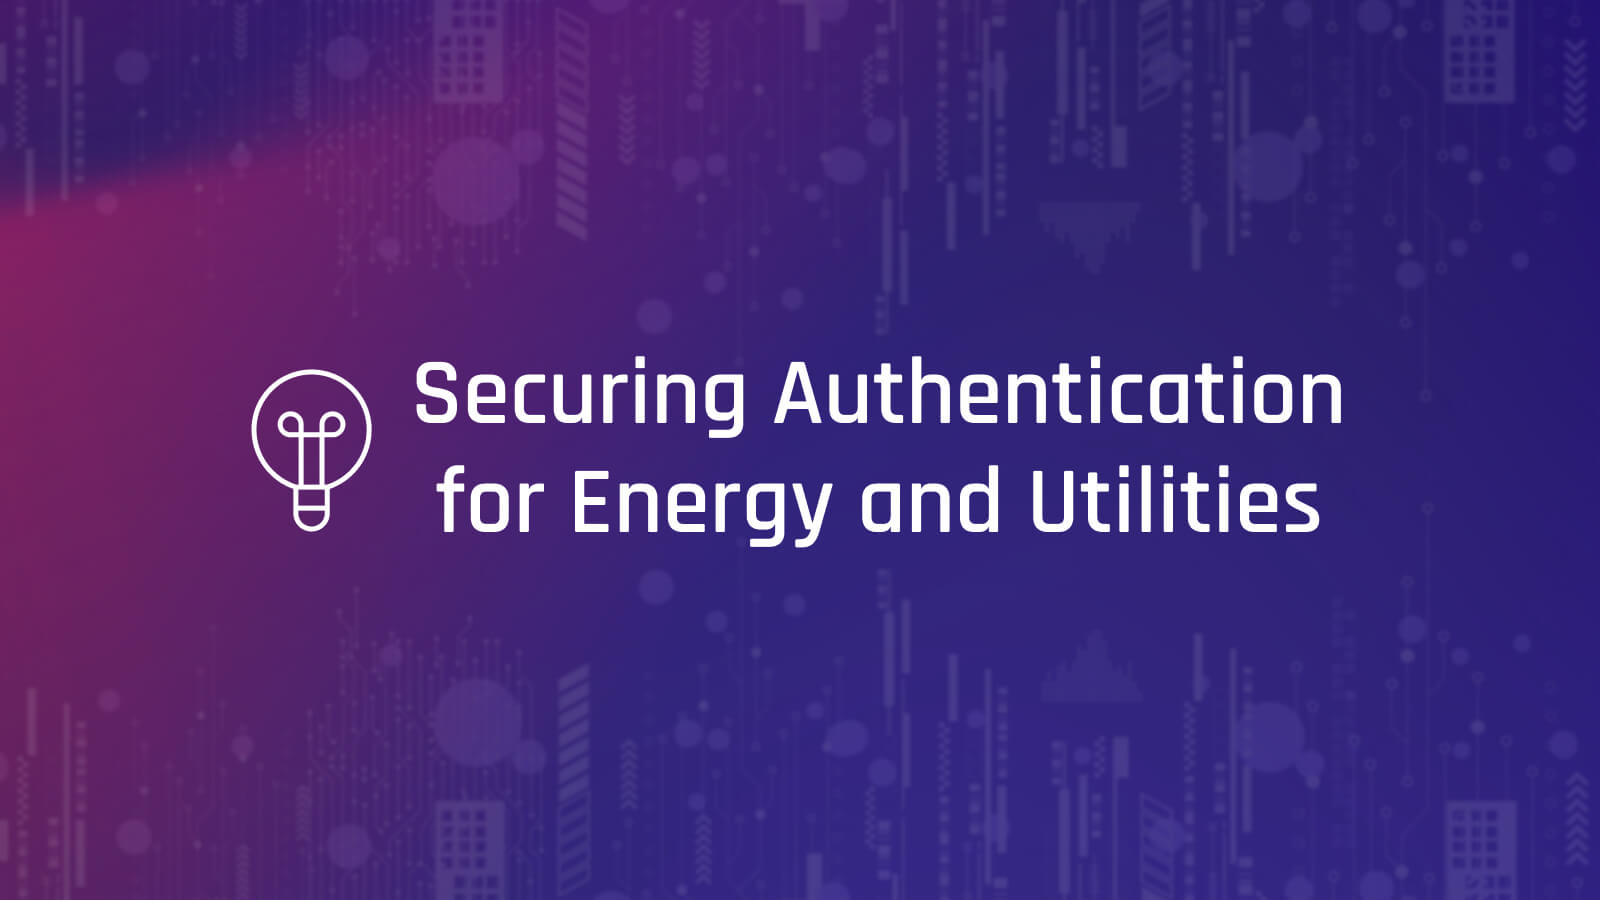 Six Best Practices to Secure Authentication for Energy and Utilities